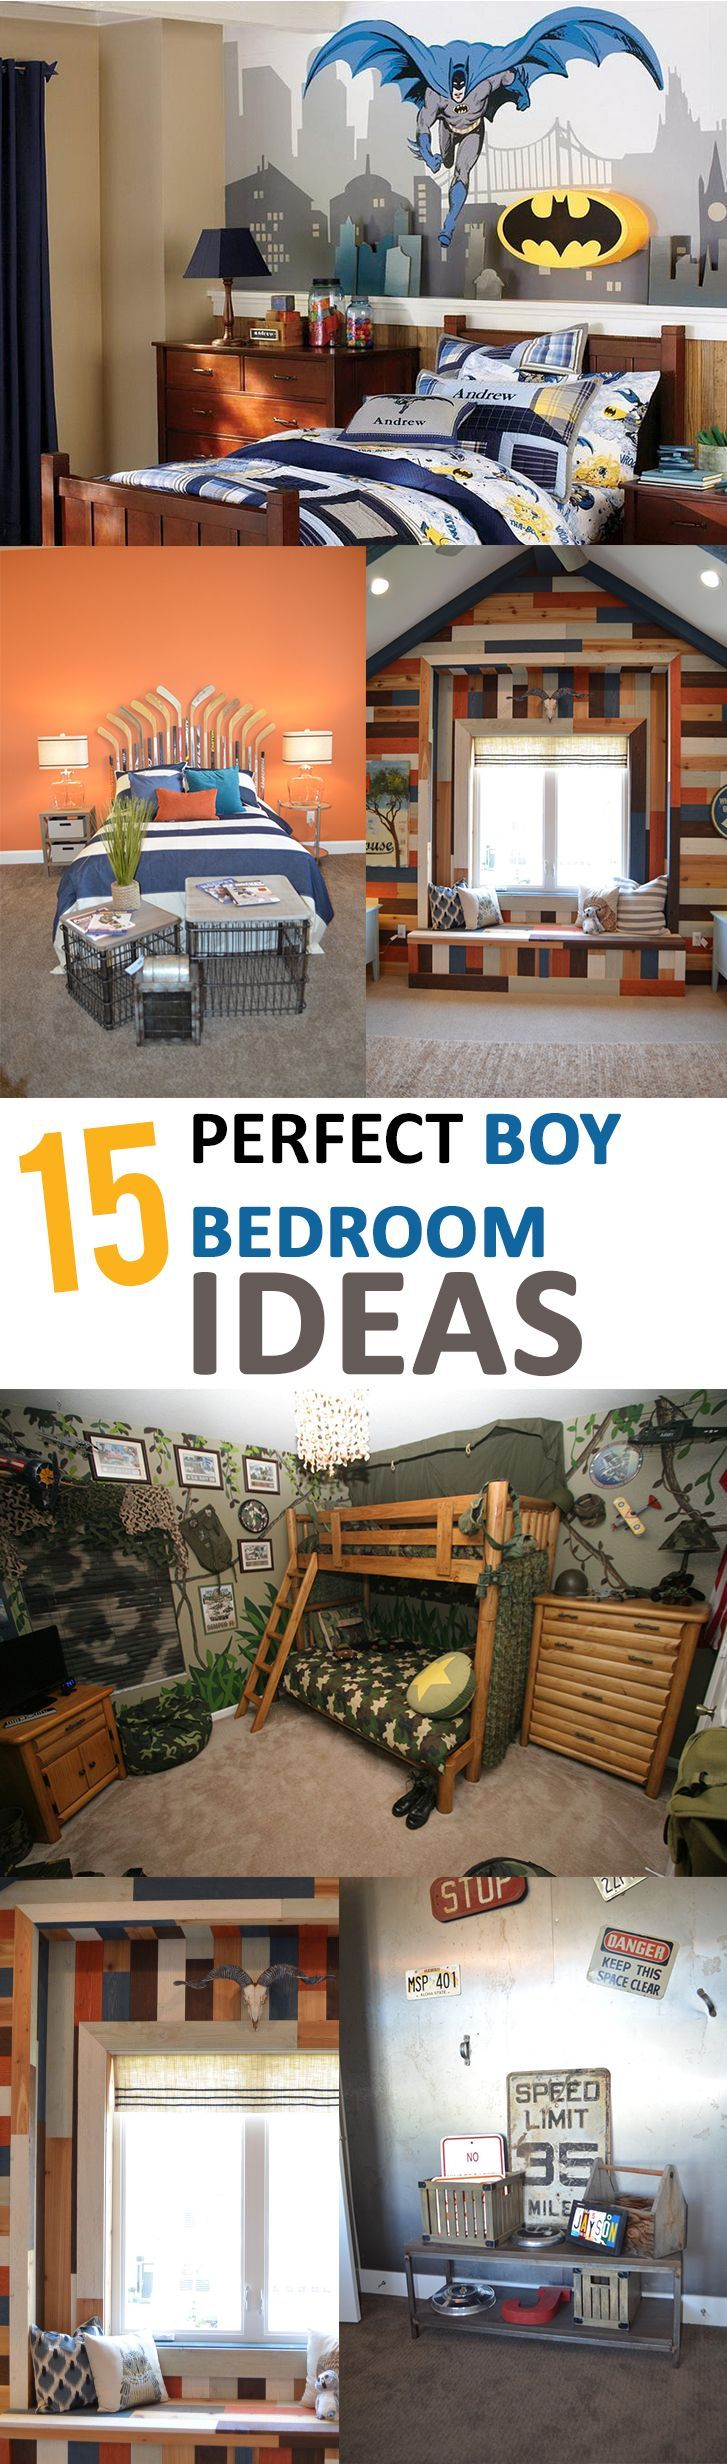 best 25 boys bedroom themes ideas on pinterest boy bedrooms superhero room and super hero bedroom - Boys Bedroom Design